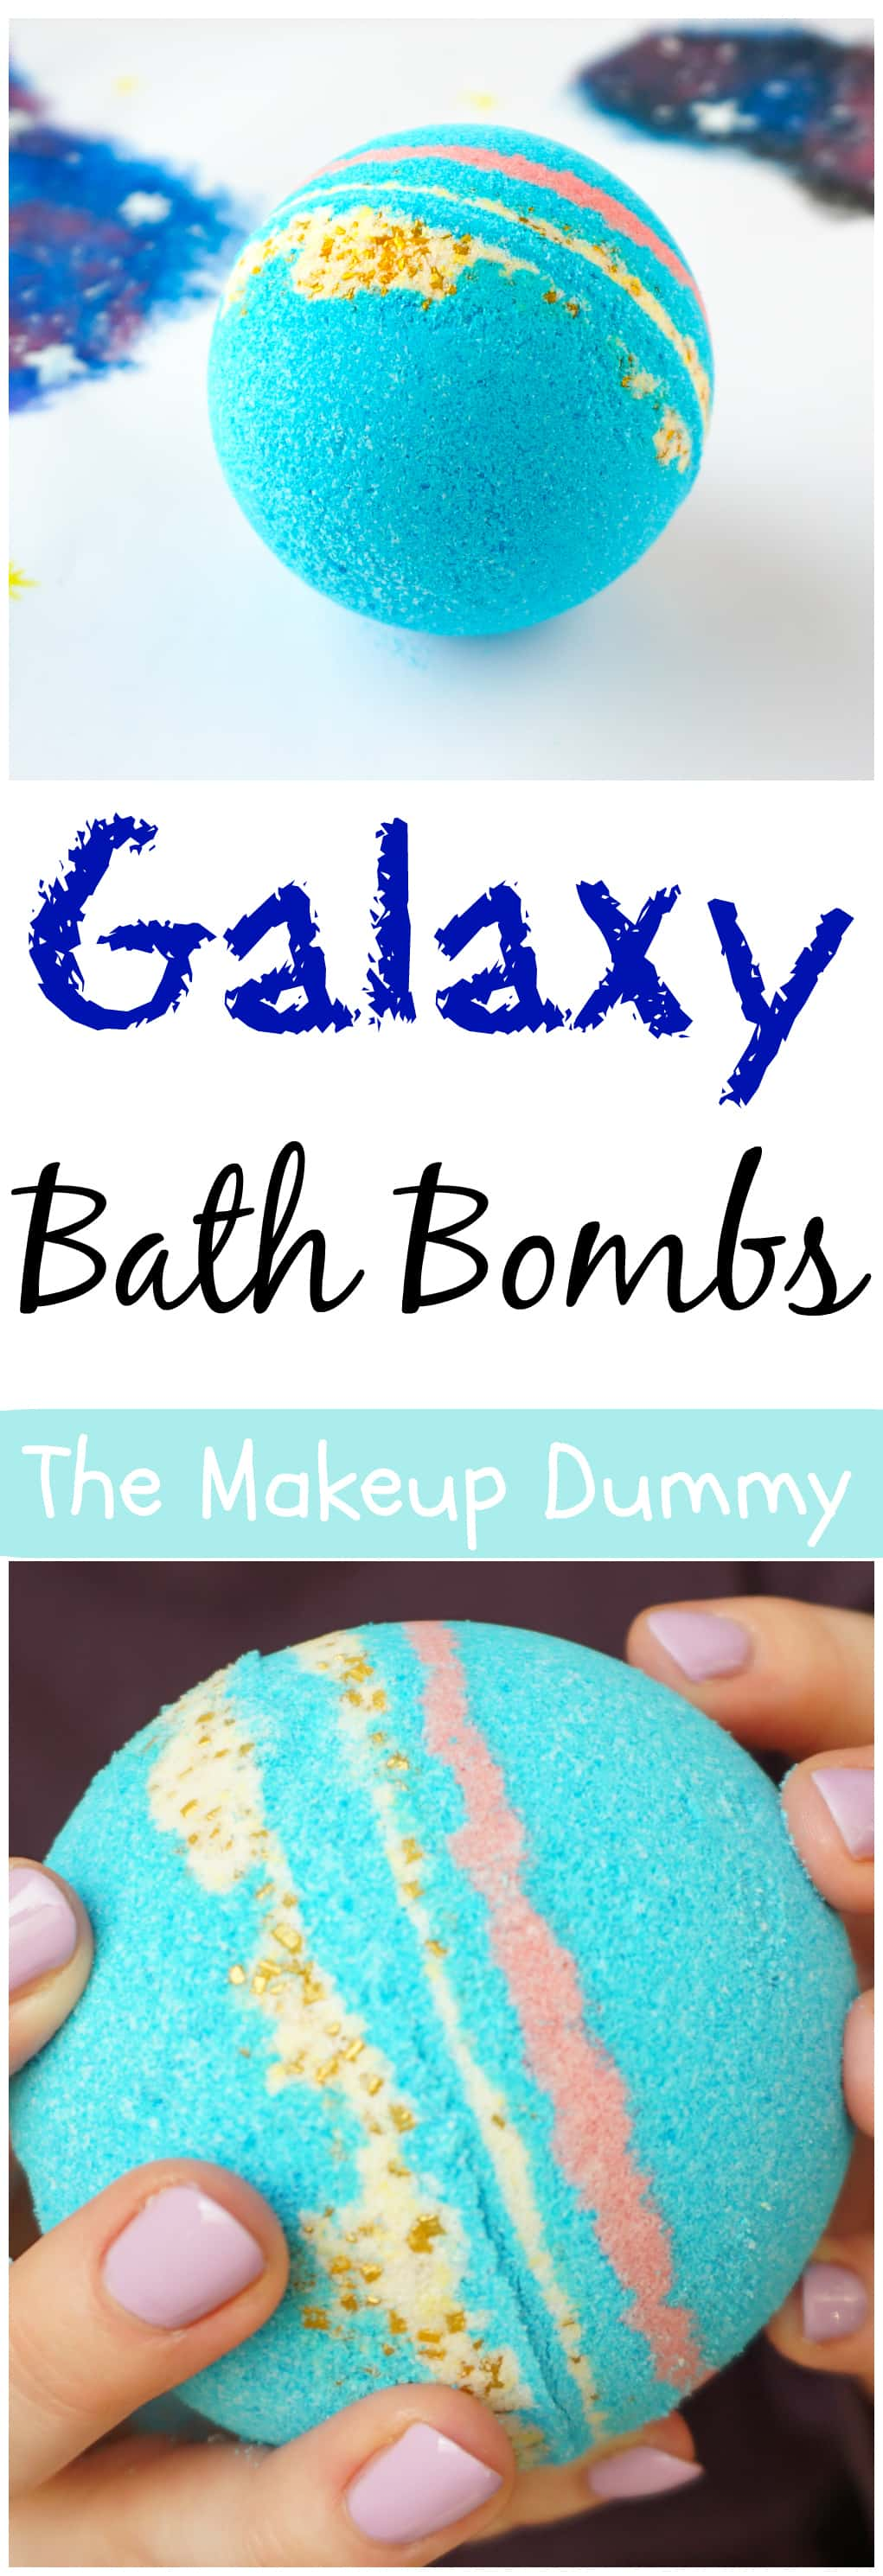 How To make Intergalactic Galaxy Bath Bomb Fizzies inspired by LUSH - it's easy, cheap and fun to make yourself! Tutorial by The Makeup Dummy #diybeauty #diybath bombs #naturalbeauty #diygifts